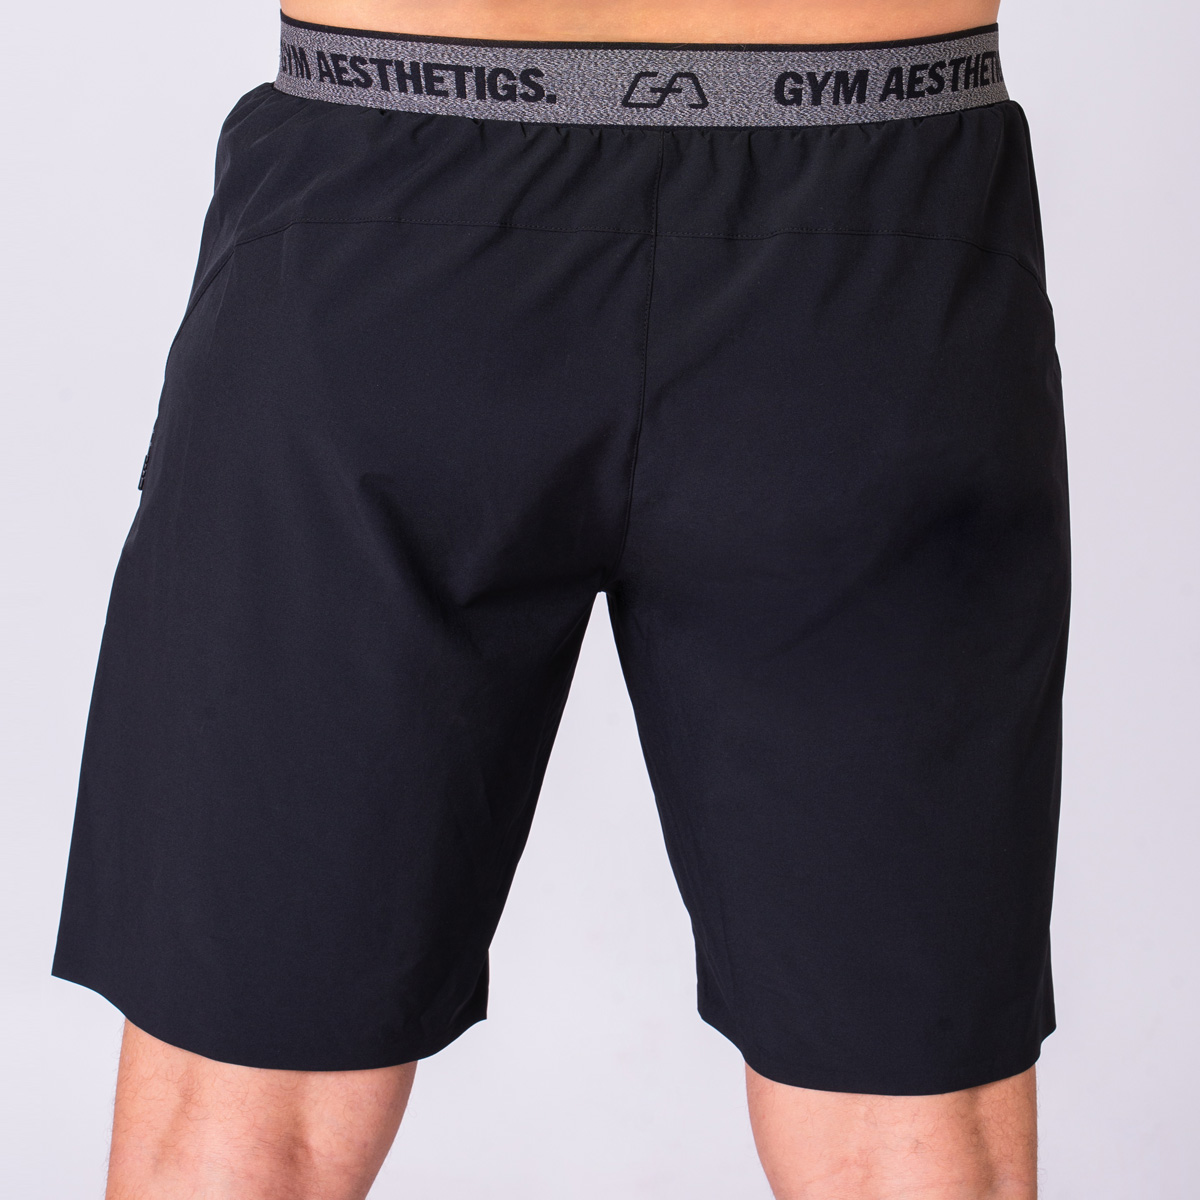 Essential 9 inch Shorts for Men in Black | Gym Aesthetics